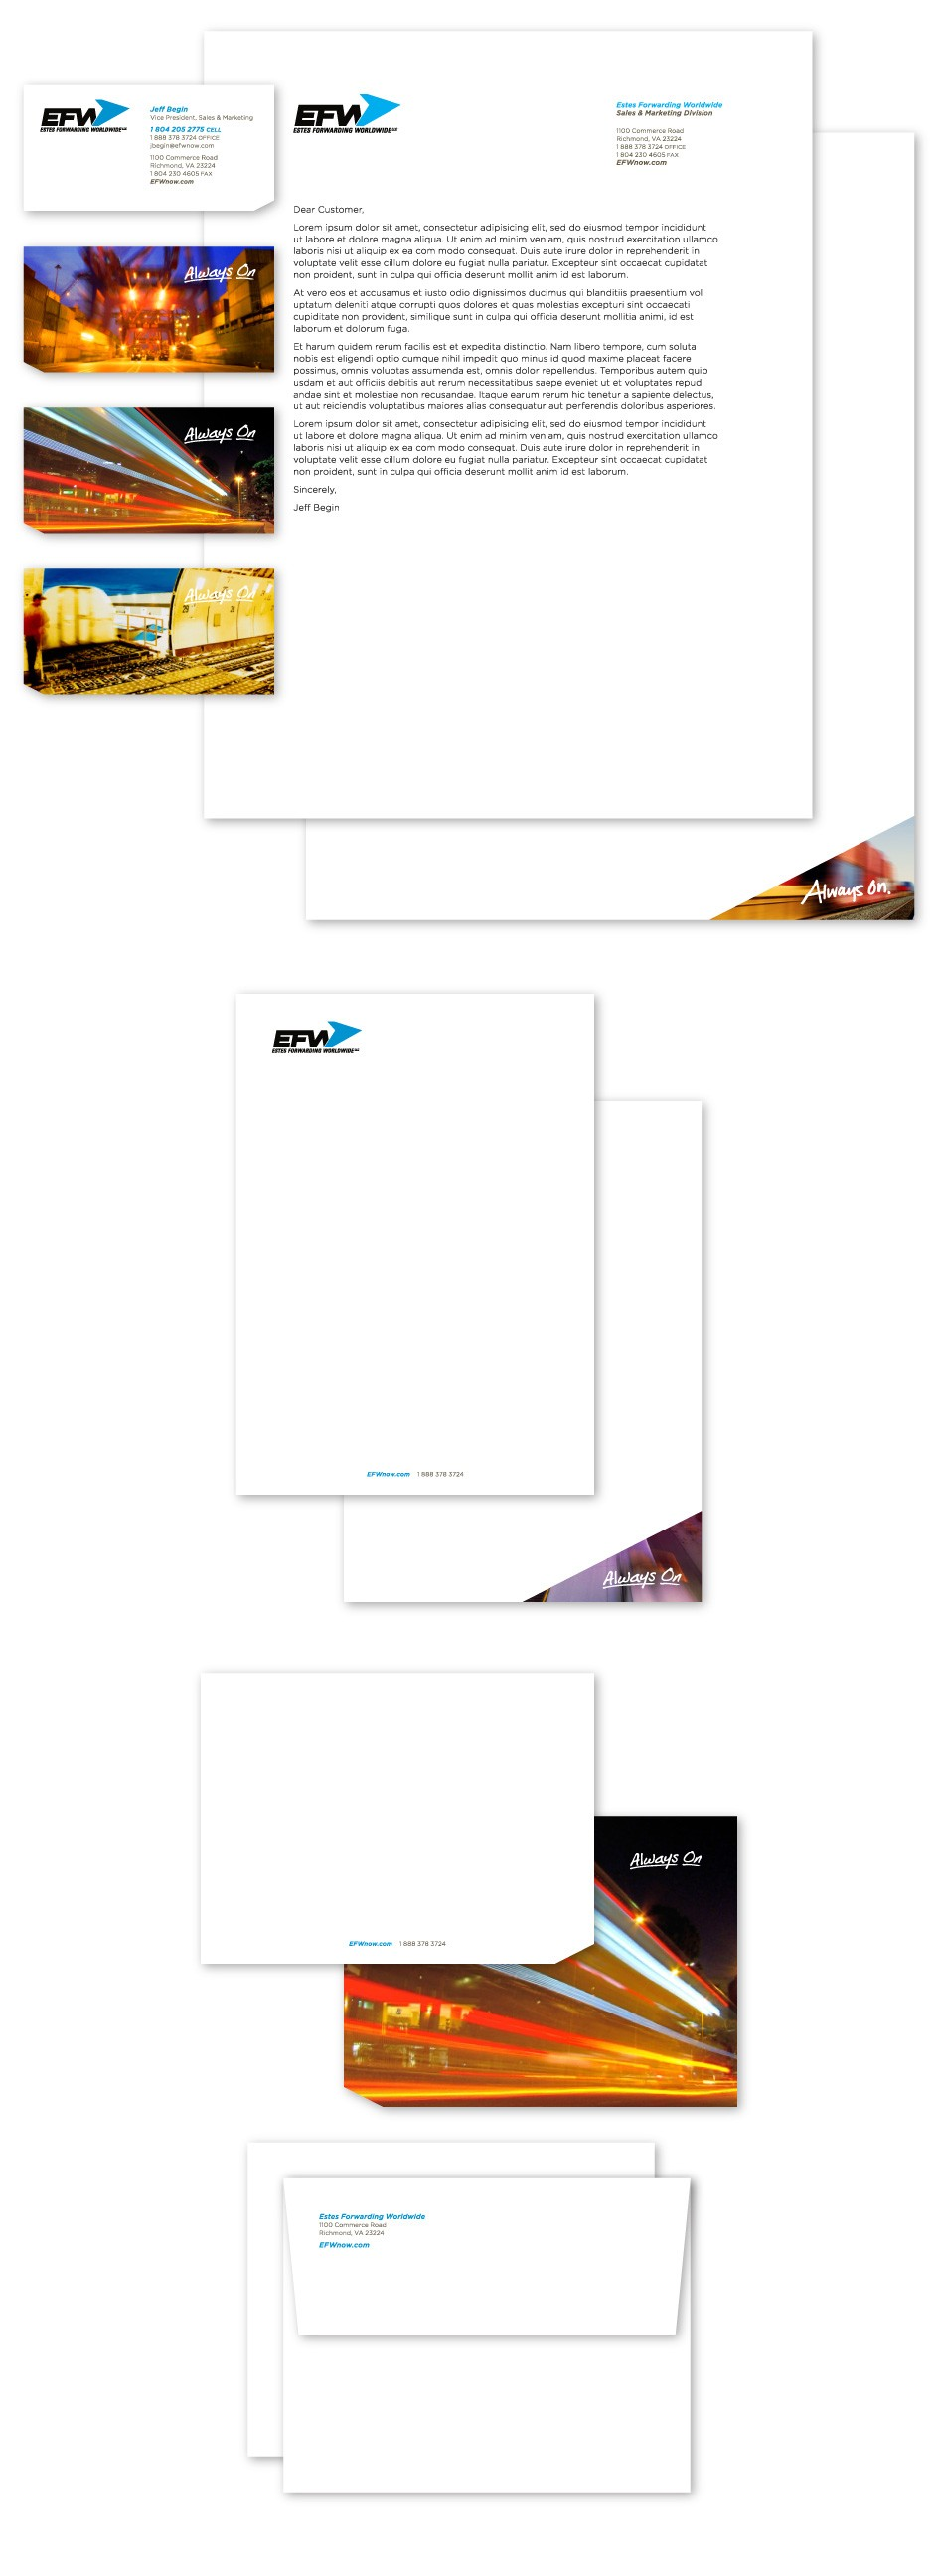 EFW-Estes-Forwarding-Worldwide-Global-Freight-Logistics-Re-Brand-Branding-Logo-Identity-UPS-FEDEX-Old-Dominion-Delivery-Train-Truck-Ship-Shipping-Stationery-System